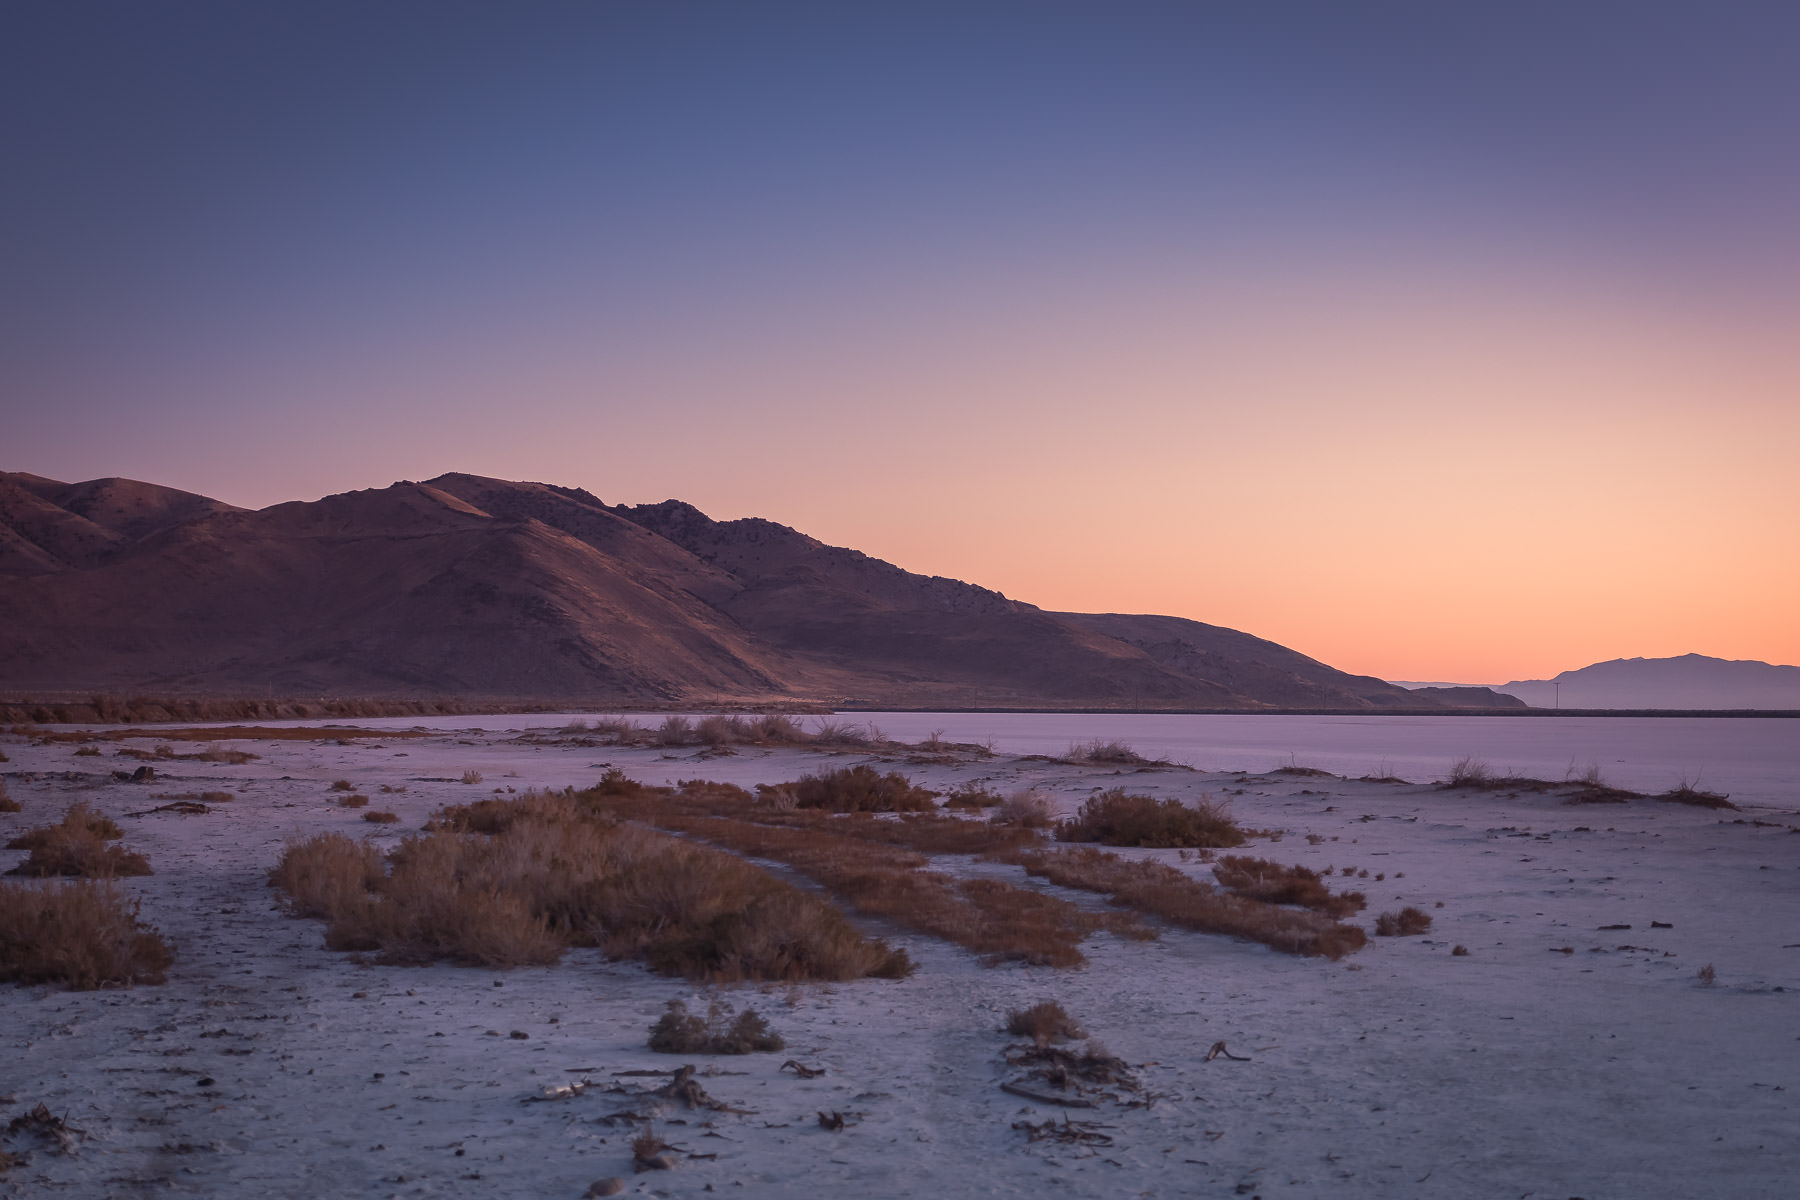 The sun rises on the mountainous Stansbury Island and the shoreline of the Great Salt Lake, Utah.